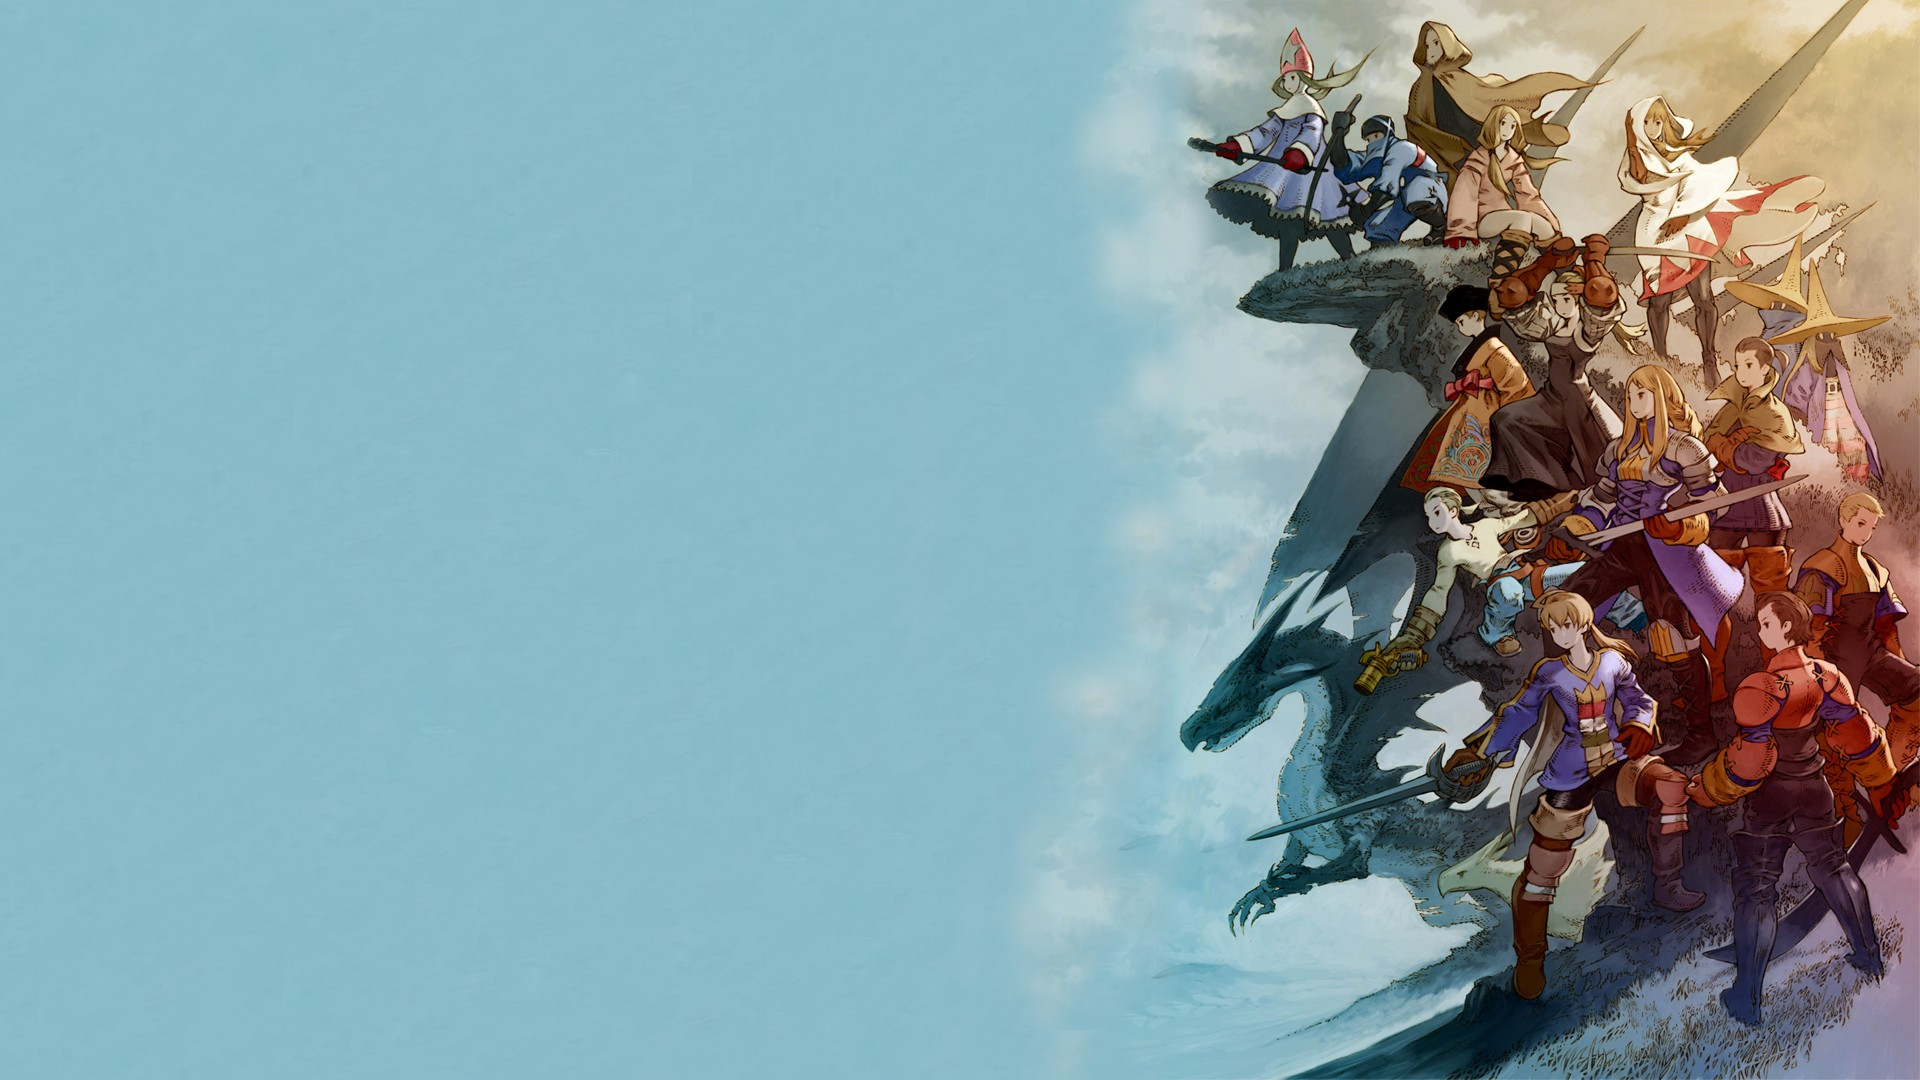 Final Fantasy Iphone Wallpaper 1920x1080